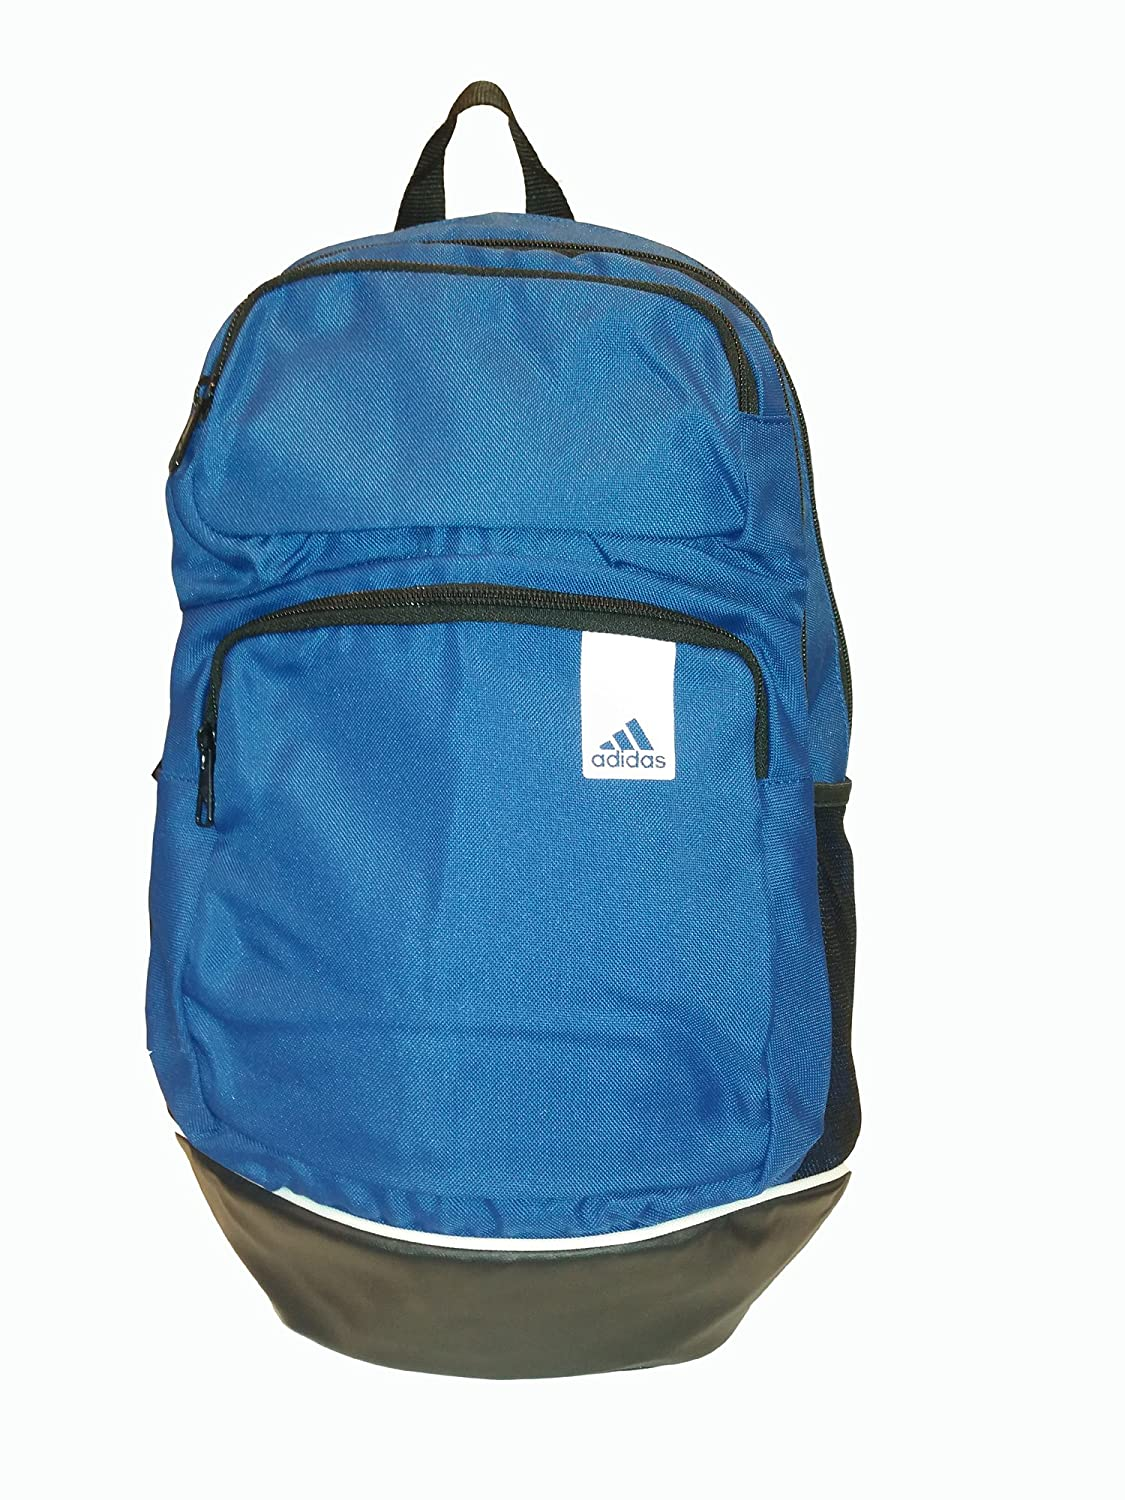 978c6ecffcc adidas bags india,lite racer adidas neo   OFF52% Free shipping!